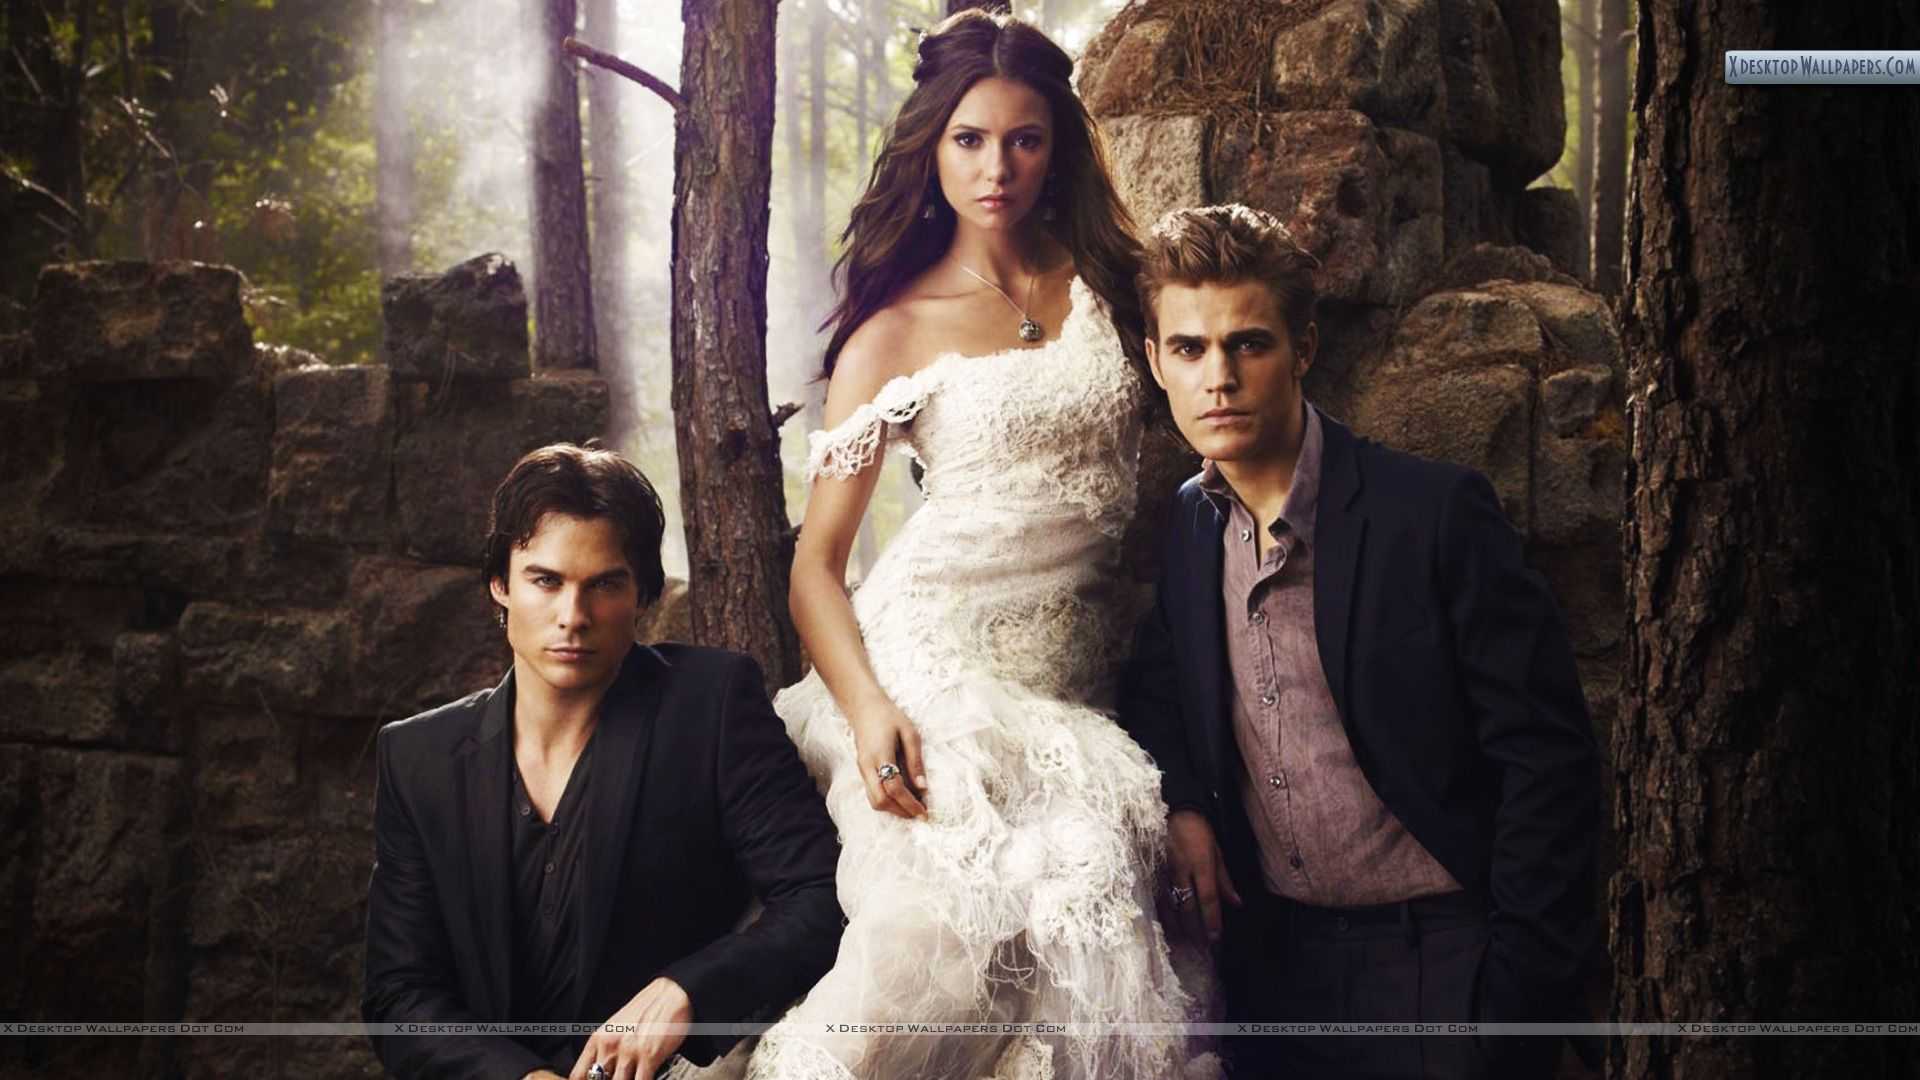 The Originals And The Vampire Diaries Images 3732 The Vampire